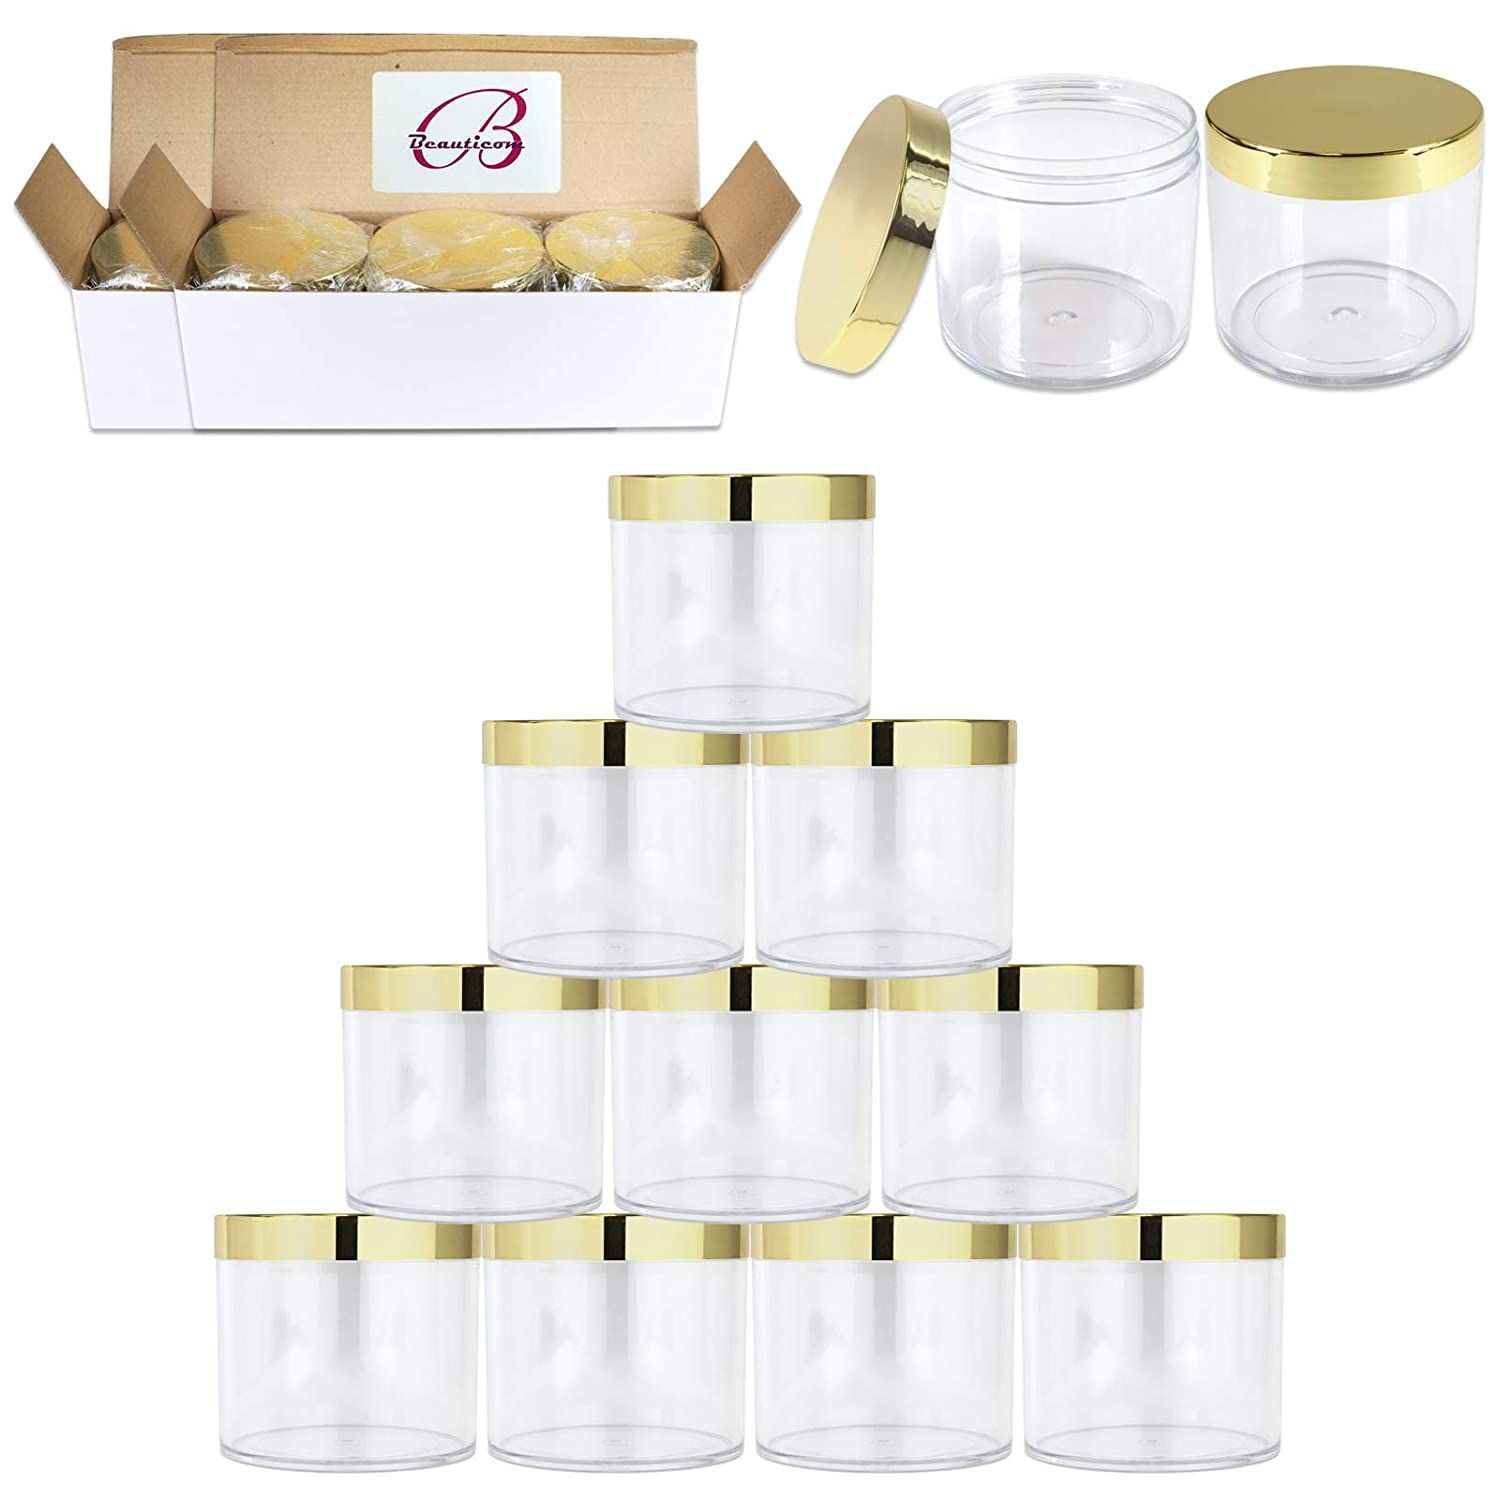 Beauticom 10 oz. 300g 300ML Thick Wall Round Leak Proof Clear Acrylic Jars with CLEAR Lids for Beauty, Cream, Salves, Scrubs 36 Pieces Jars Lids, GOLD